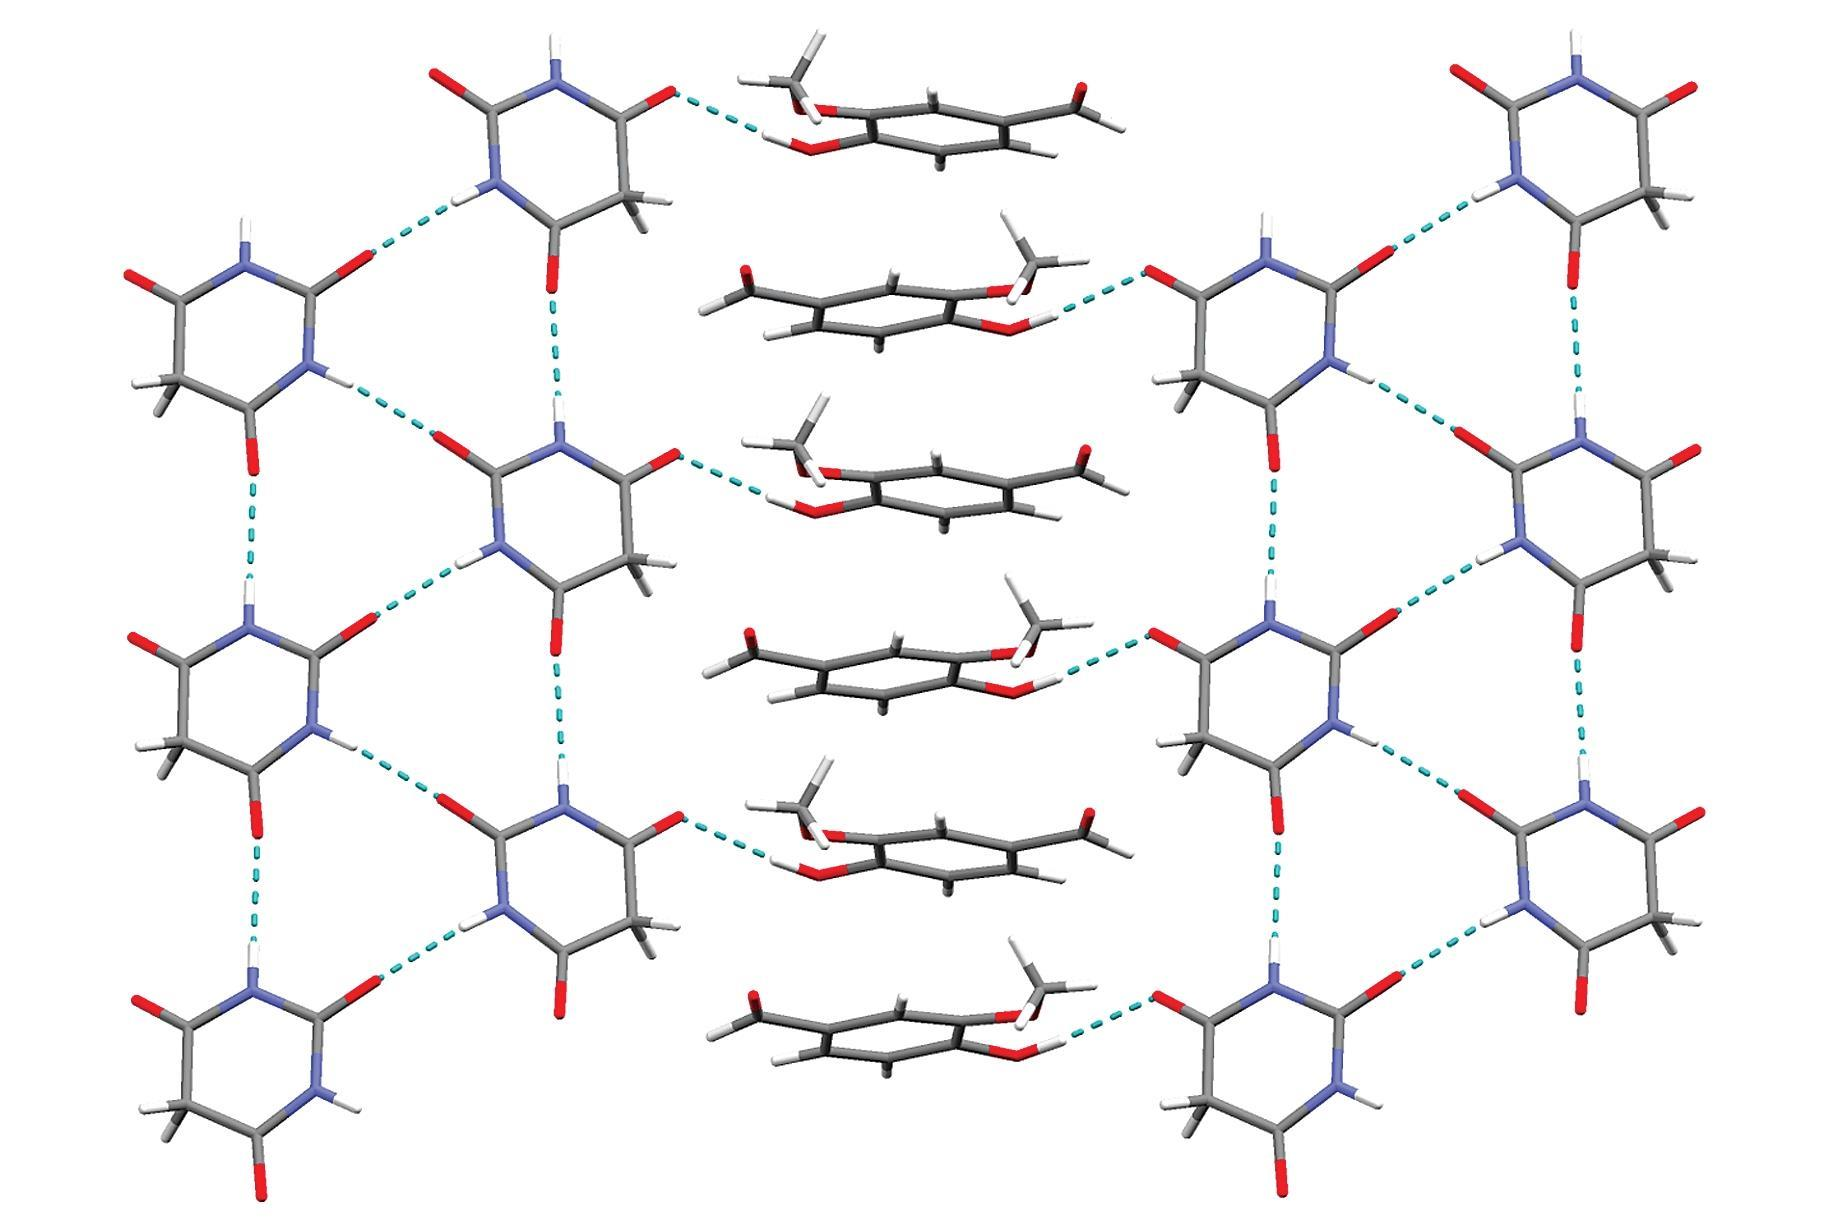 Cocrystal intermediate is first for mechanochemistry | Research | Chemistry World